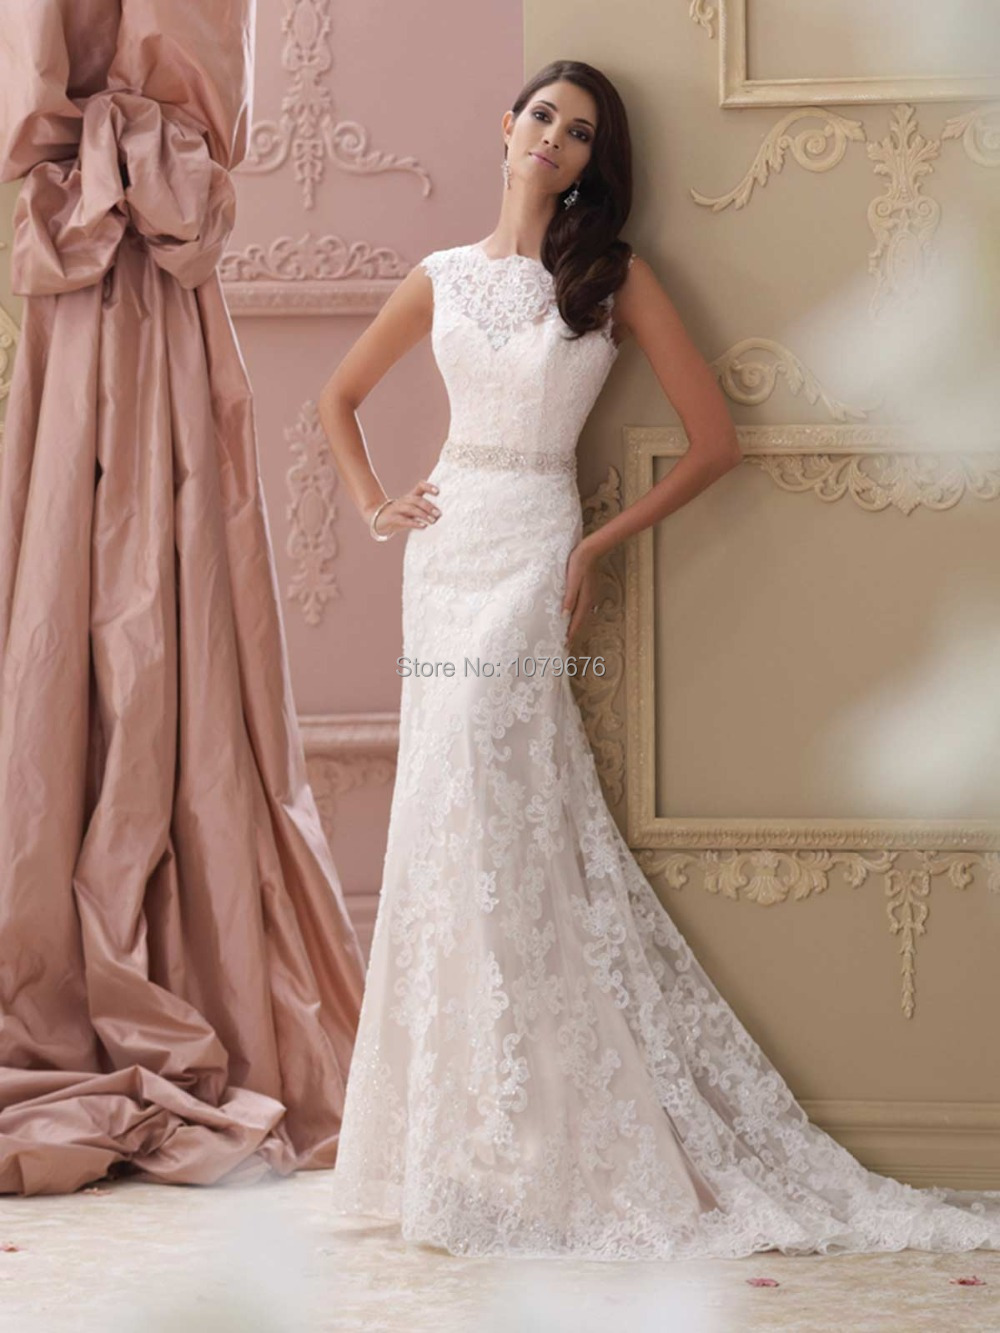 a line wedding dresses with cap sleeves wedding dress cap sleeves A line wedding dresses with cap sleeves photo 2